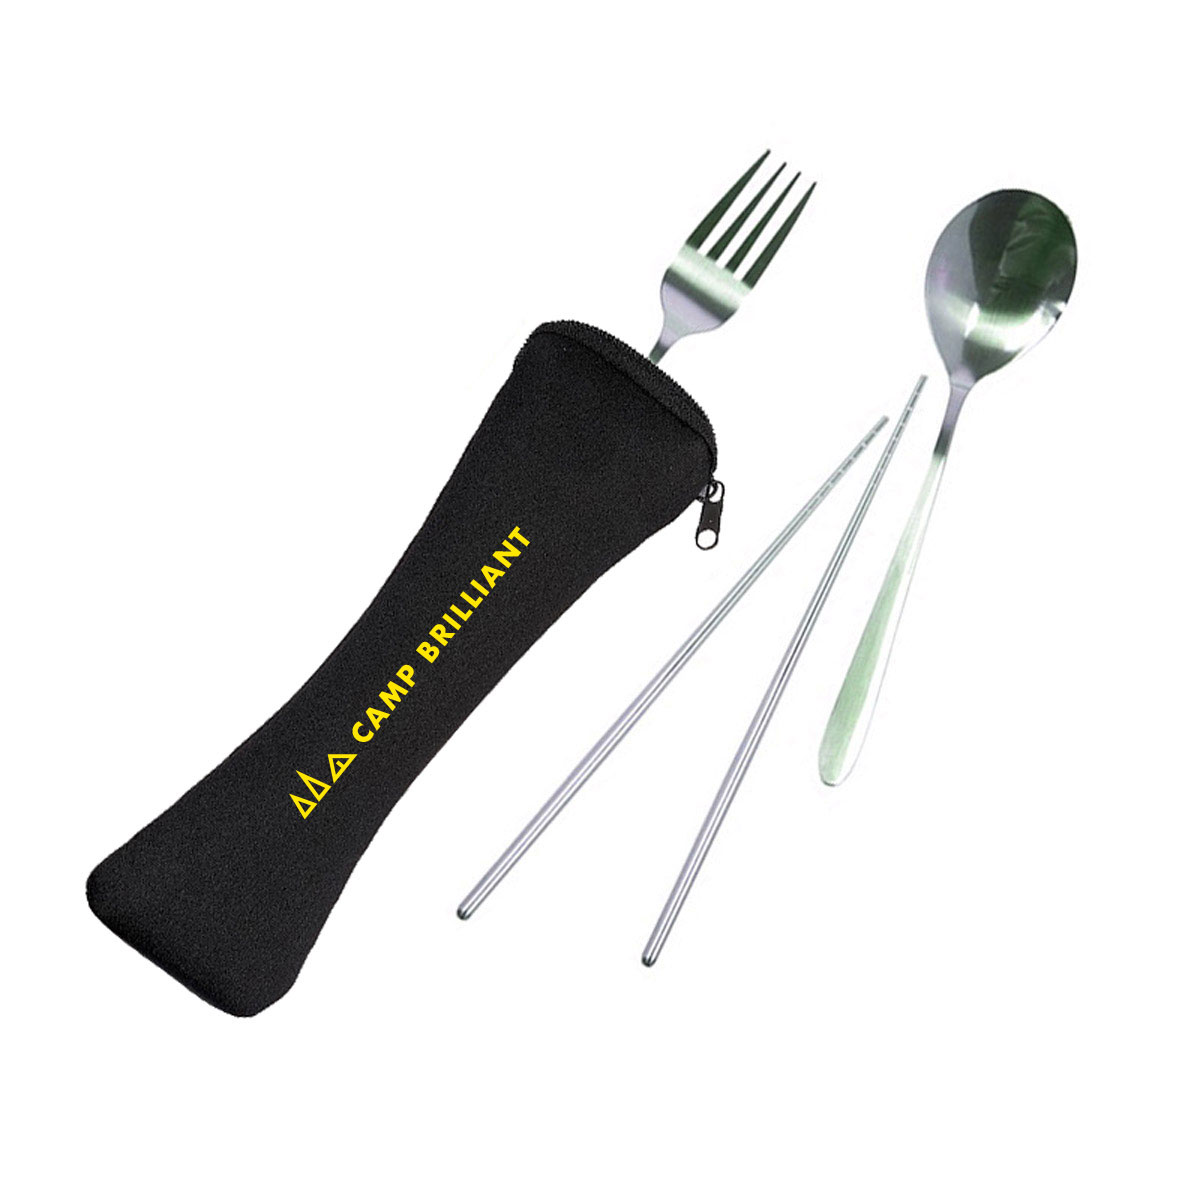 229548 travel cutlery set one color one location imprint